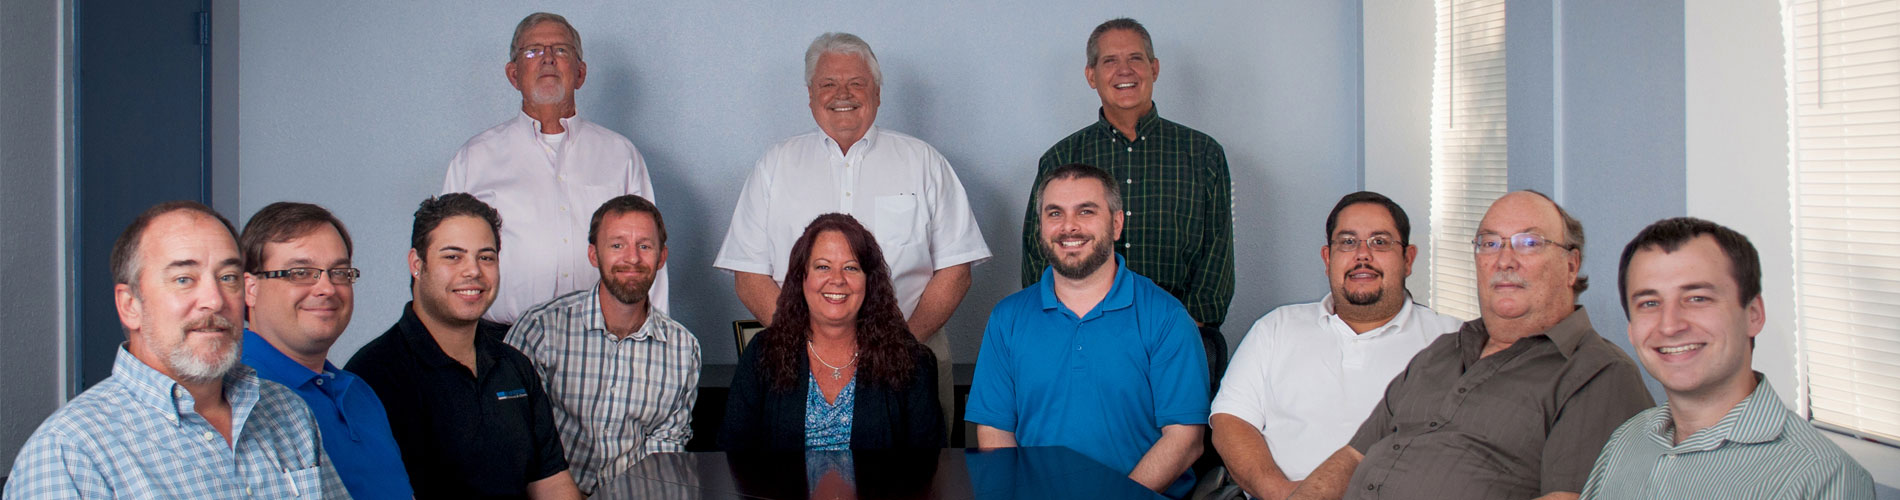 Schneider Engineering & Consulting Management Team